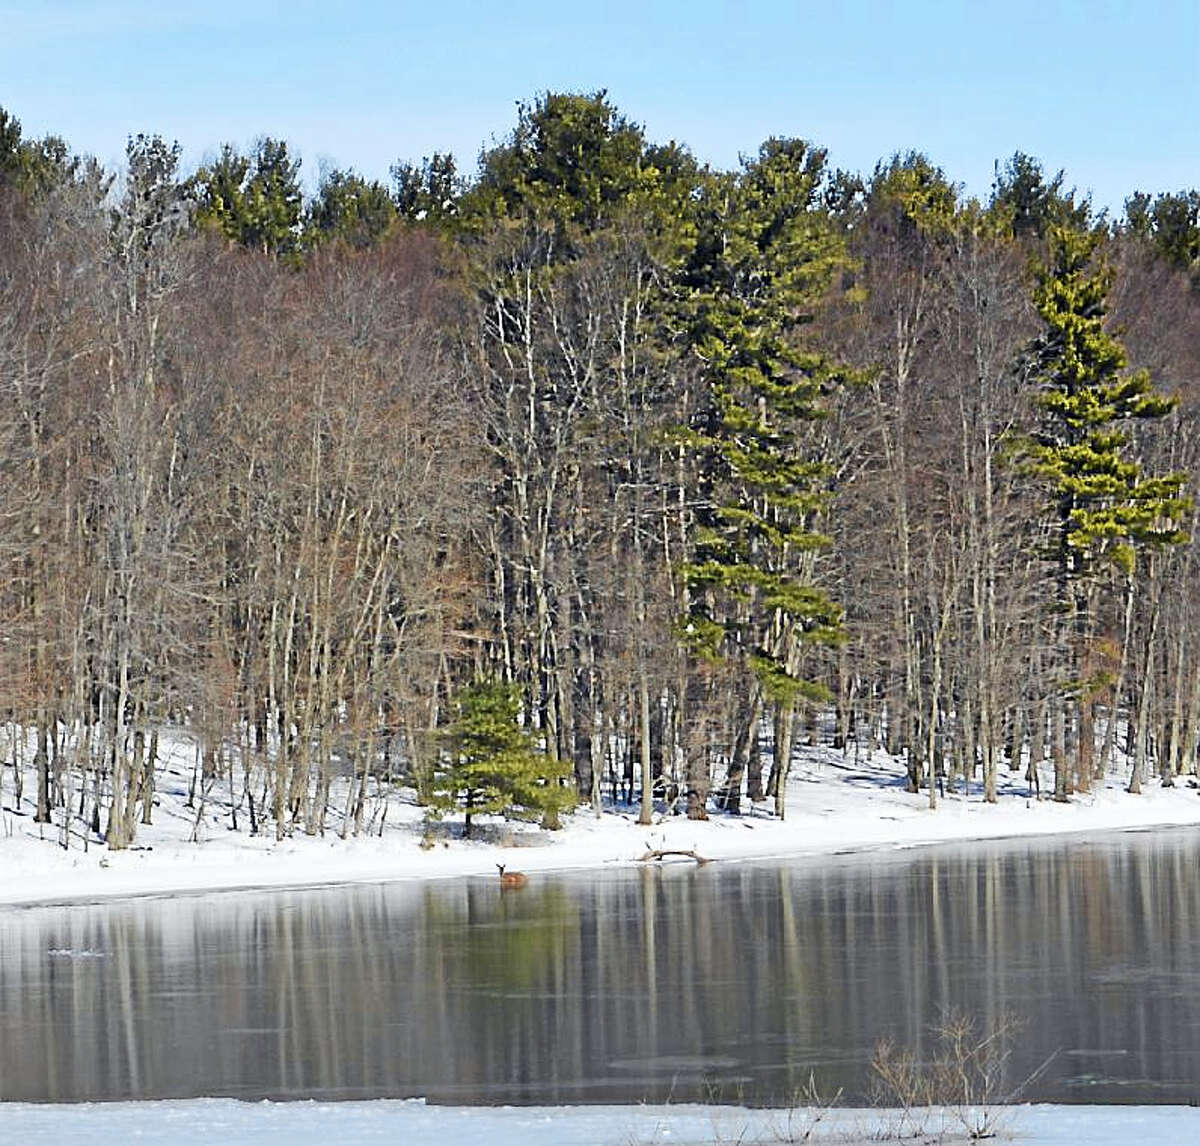 For three hours Friday morning, a deer was stuck on ice at the Mt. Higby Reservoir. She eventually make her way finally closer to shore, regained her footing, then pranced off into the woods off Route 66 on the Middletown/Middlefield line.